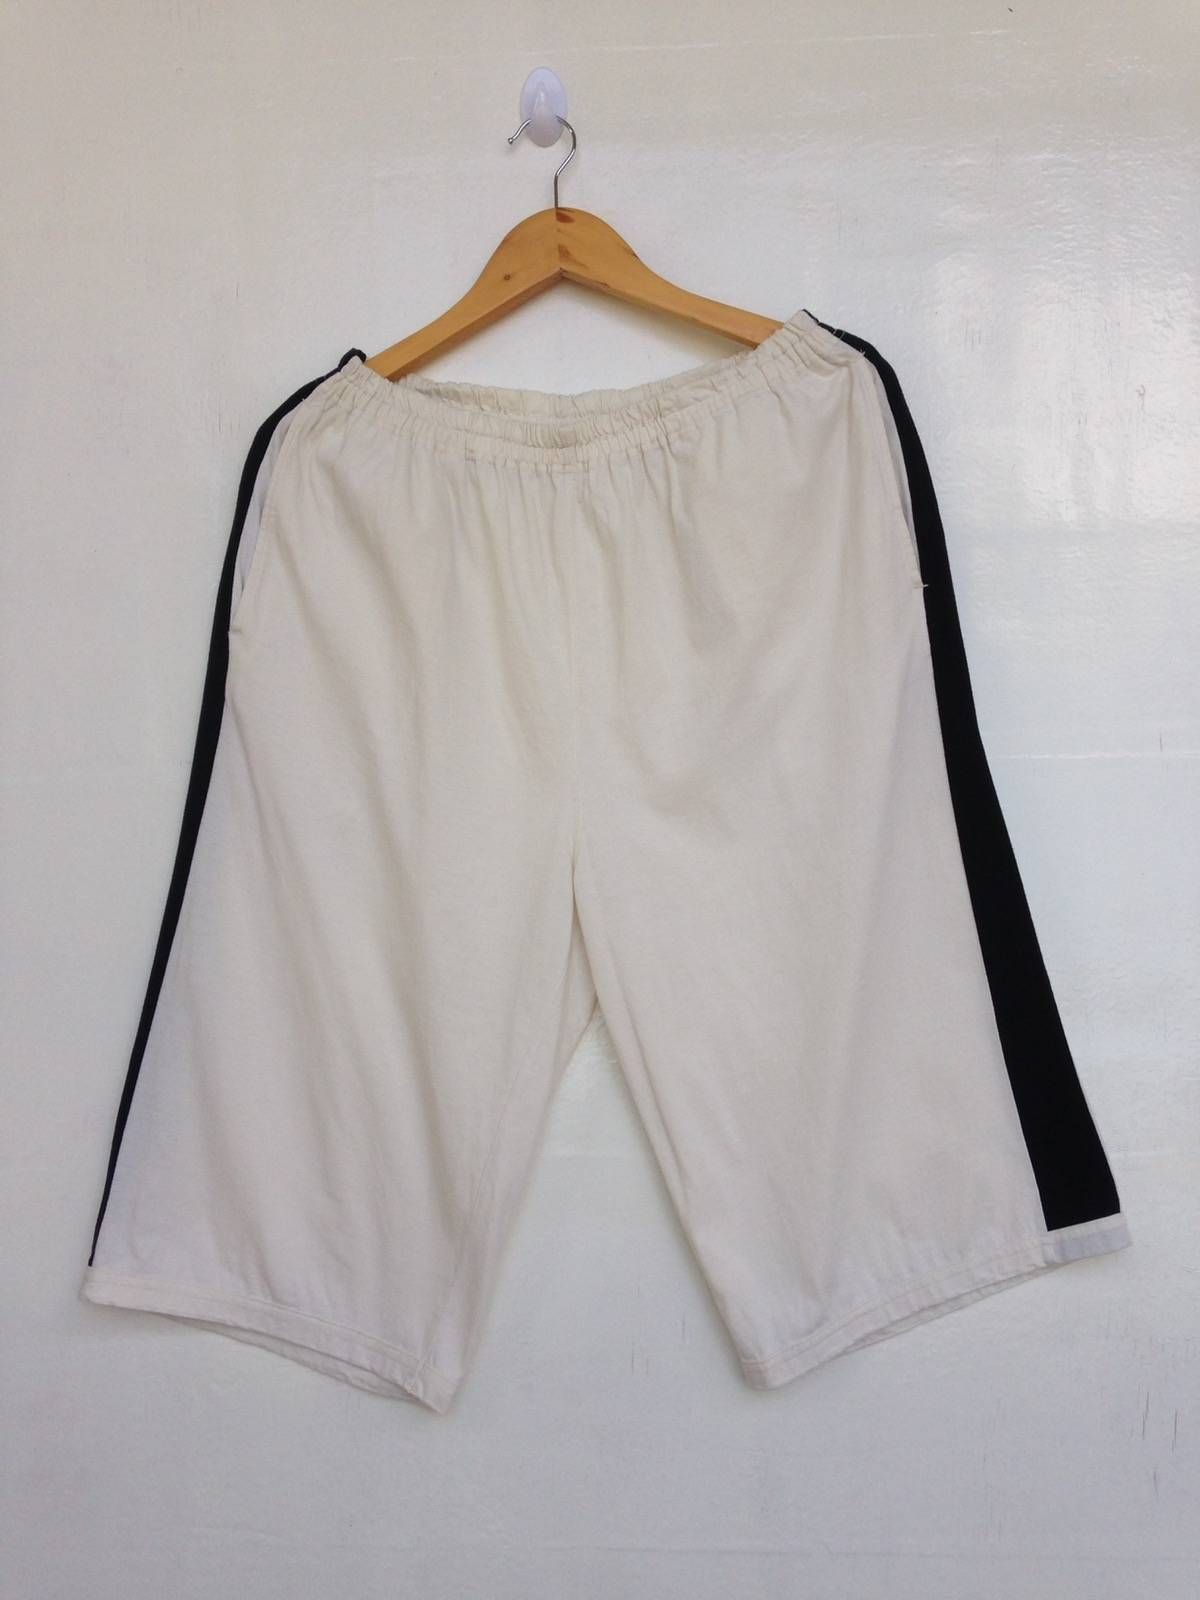 83082def917f Ys For Men Y s For Living Shorts Pants Size 32 - Shorts for Sale - Grailed